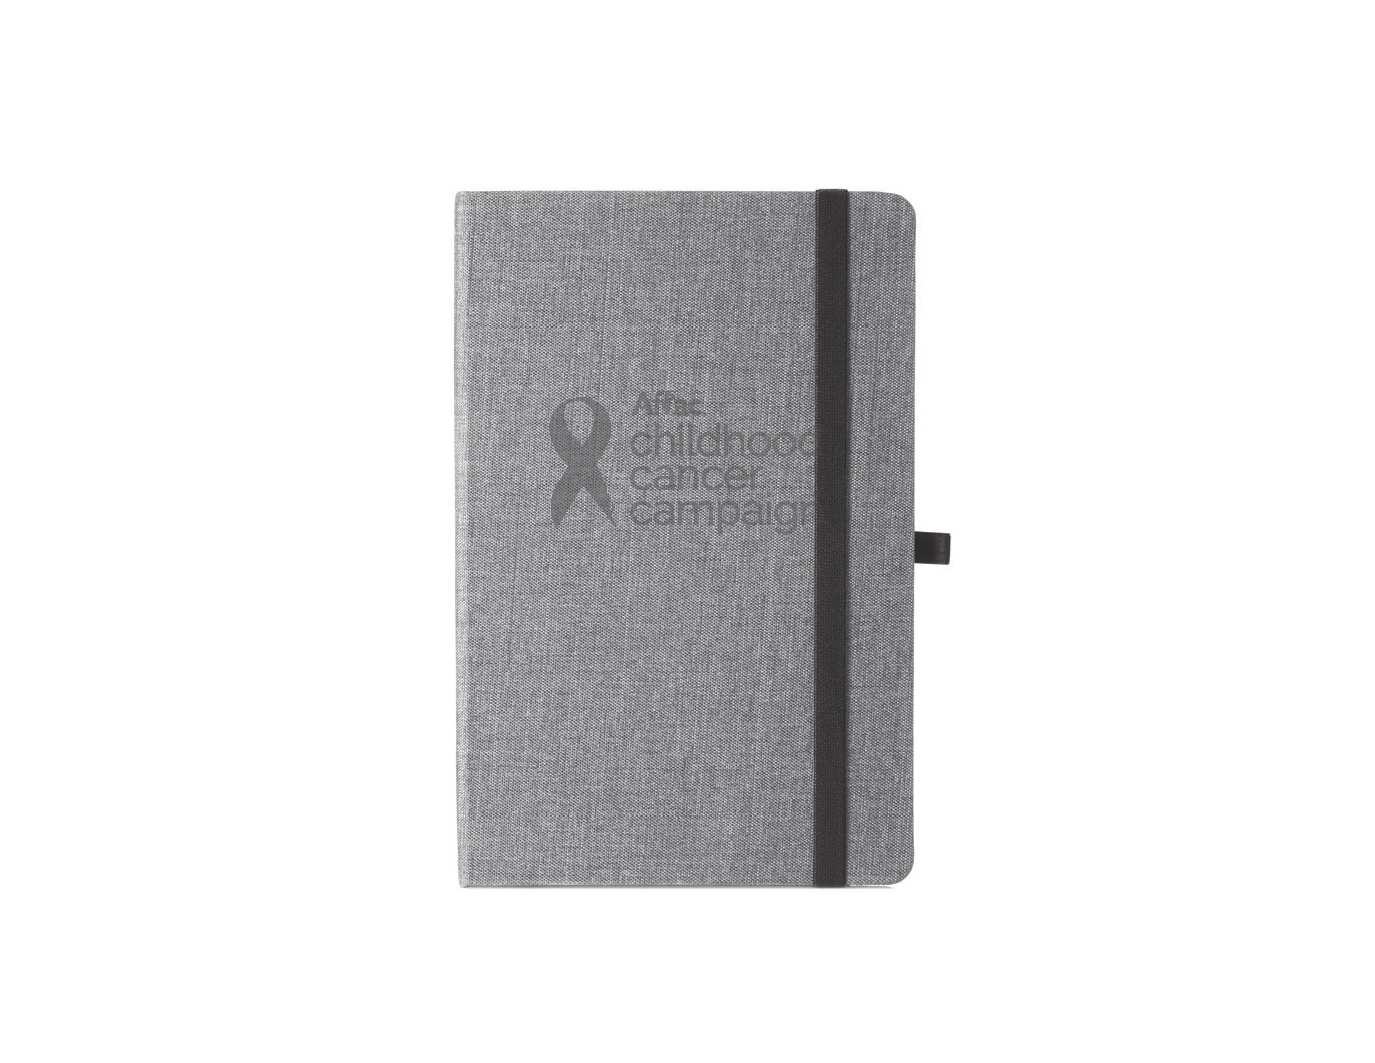 Childhood Cancer Campaign Canvas Bound Journal.